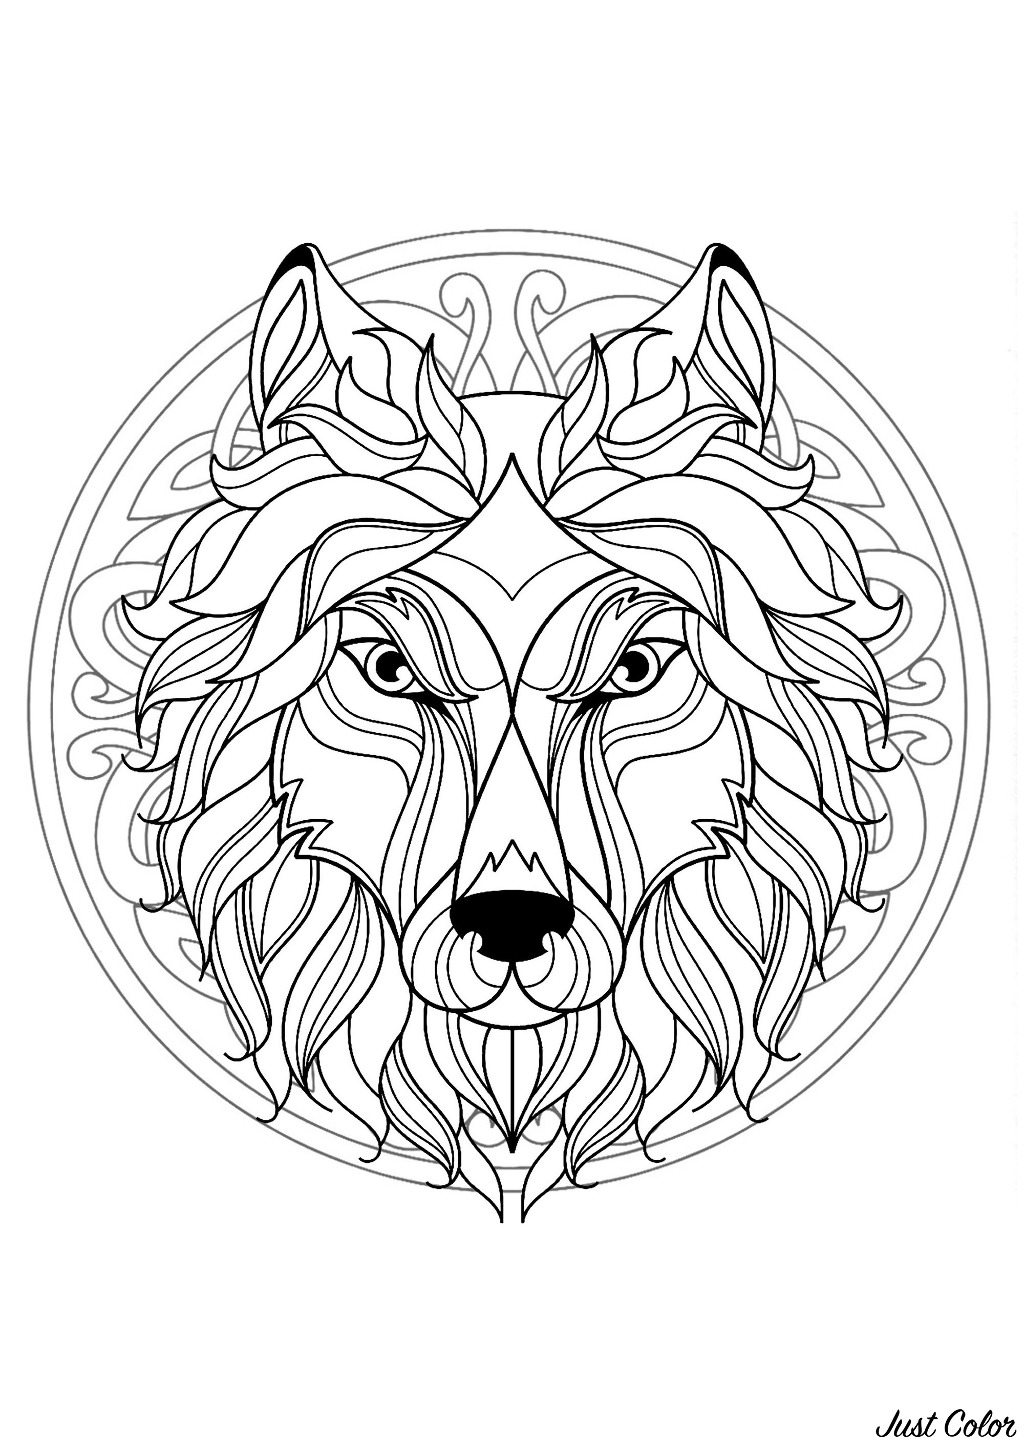 A Mandala with a Wolf, for those who prefer Nature. It can sometimes be even more relaxing when coloring and passively listening to music : don't hesitate to do it !